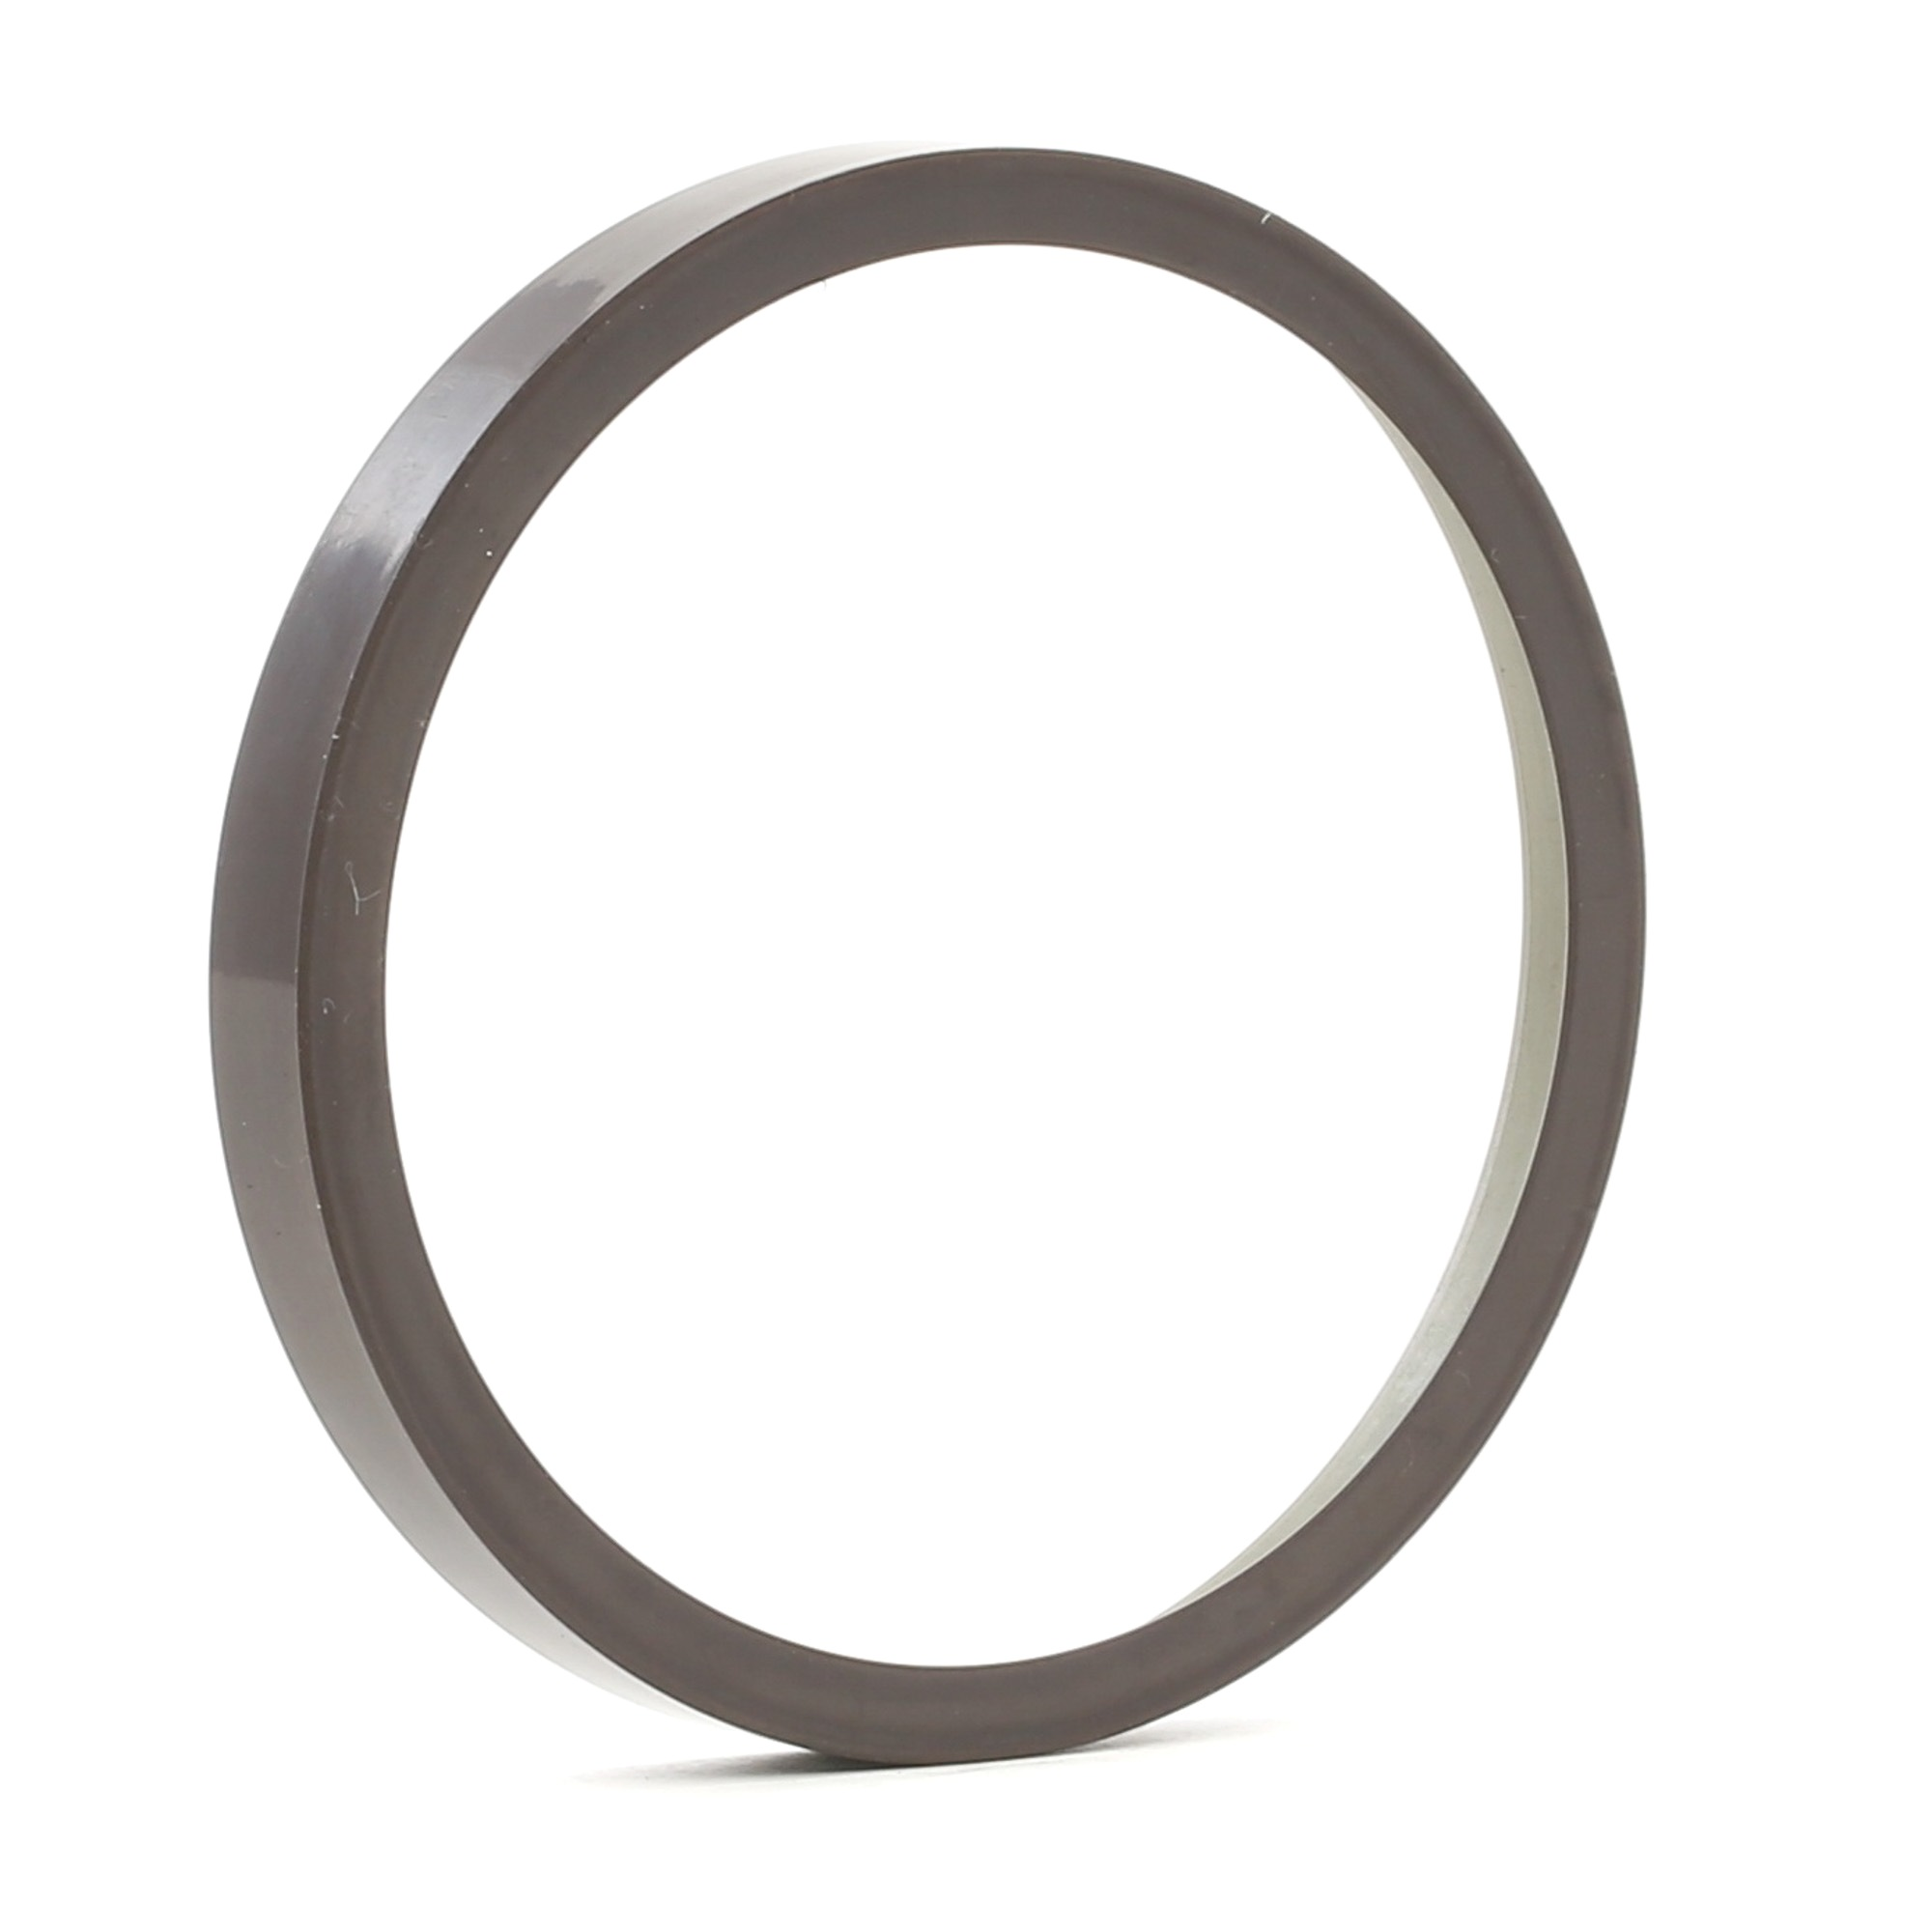 Reluctor Ring MAXGEAR 27-0302 rating